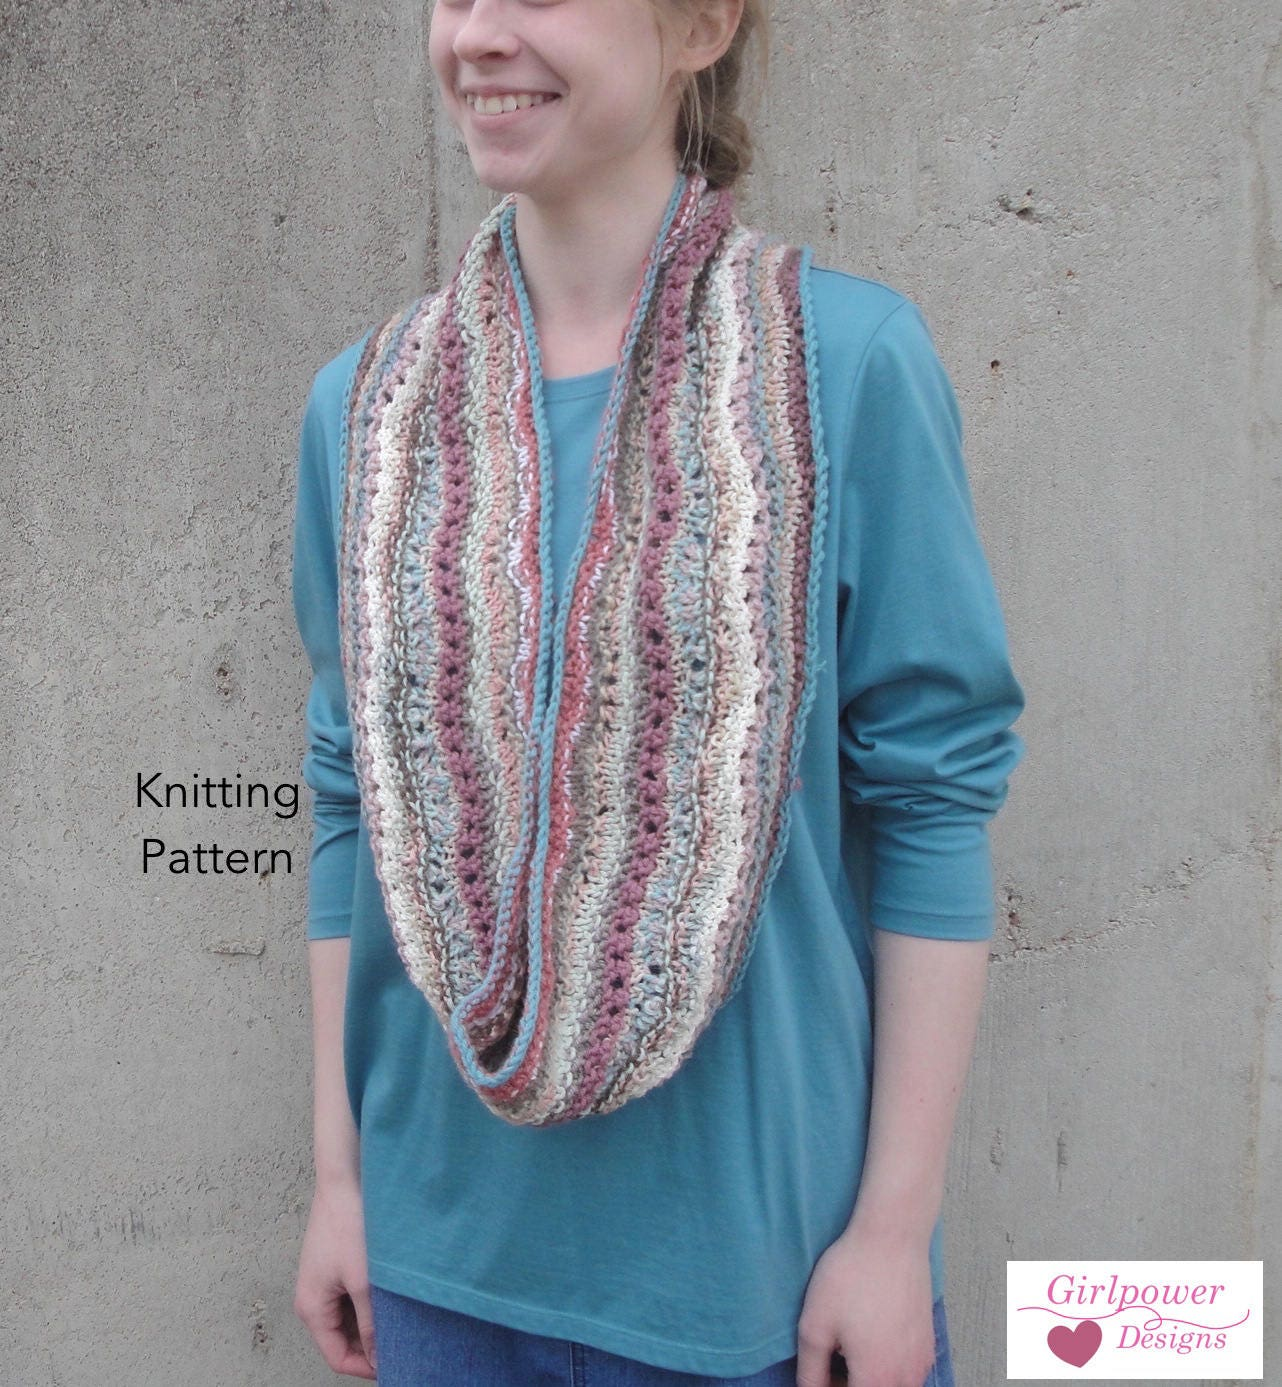 Striped Infinity Scarf Knitting Pattern, Eternity Cowl Scarf ...